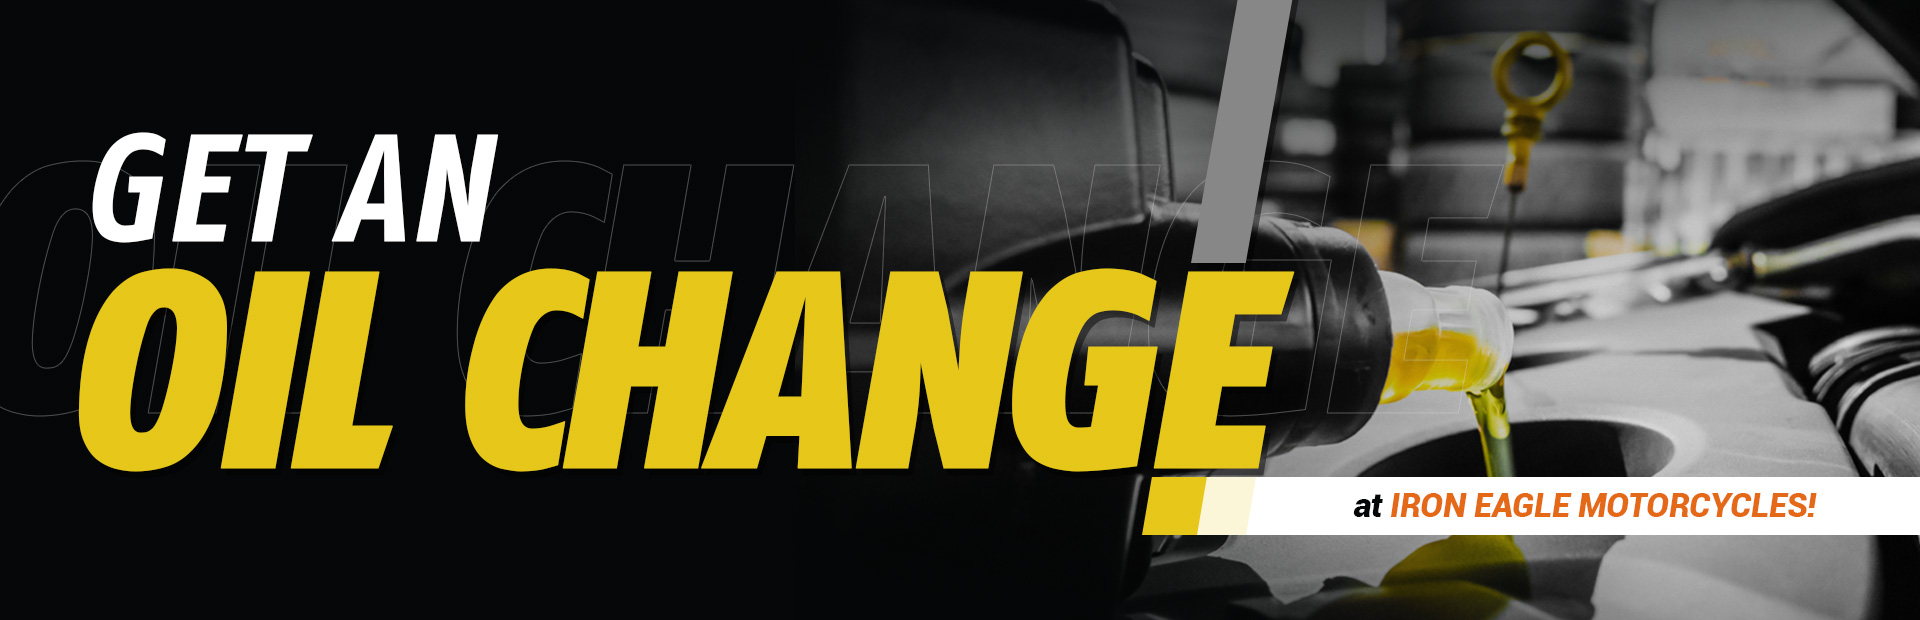 Get an oil change at Iron Eagle Motorcycles!